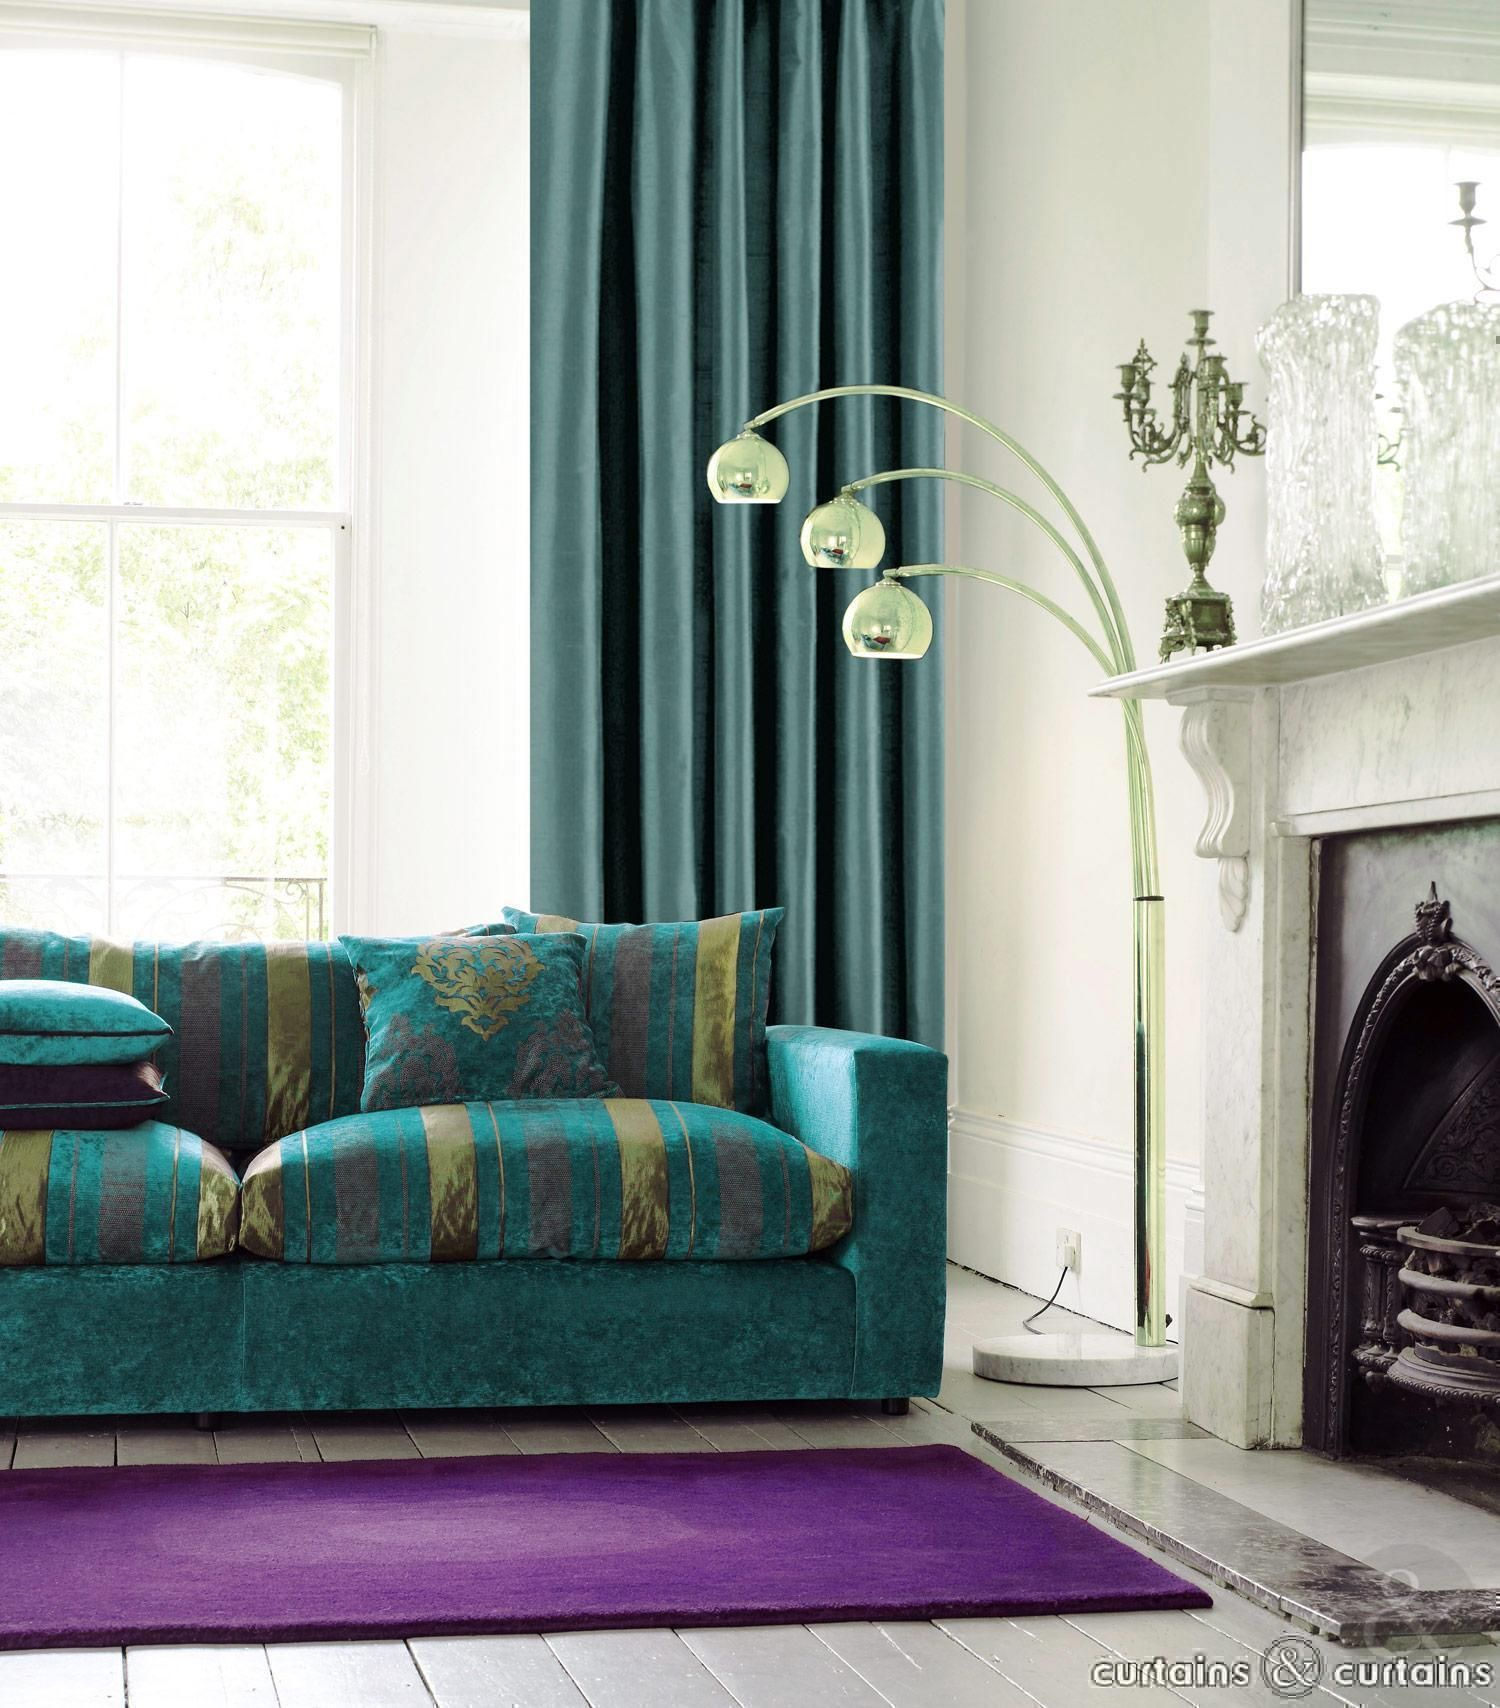 Superior Classy Teal Sliding Curtain Windows Also Cool Turquoise Living Room Sofas  Added Modern Stands Lamps As Well As White Fireplace In Modern Turquoise  Living ... Good Looking